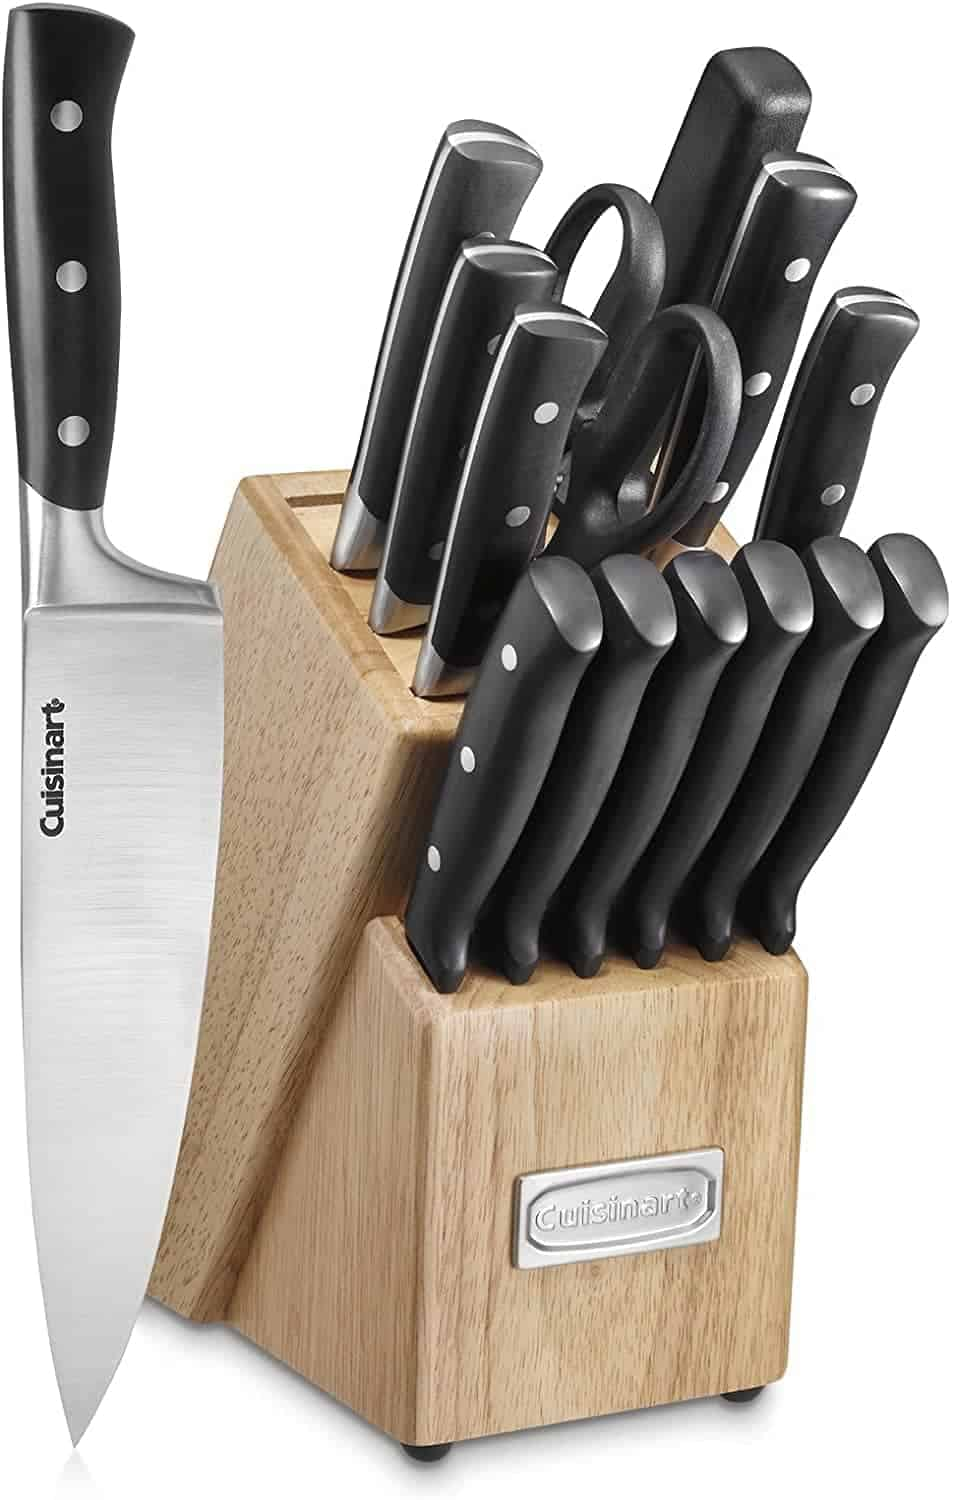 Cuisinart Triple Collection Kitchen Knives